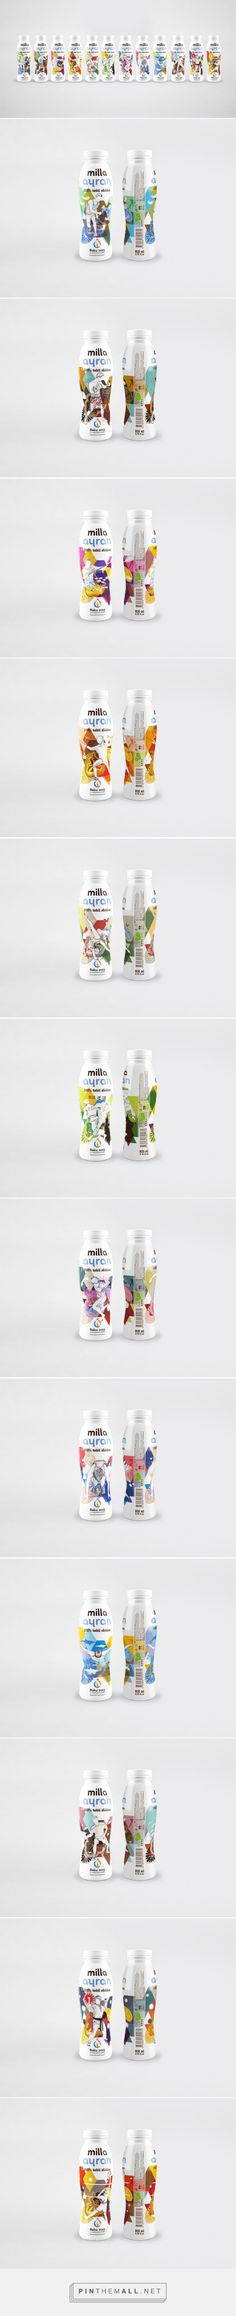 Milla Ayran limited edition packaging for European Games Baku 2015 via Packaging of the World curated by Packaging Diva PD. More really nice packaging illustrations.